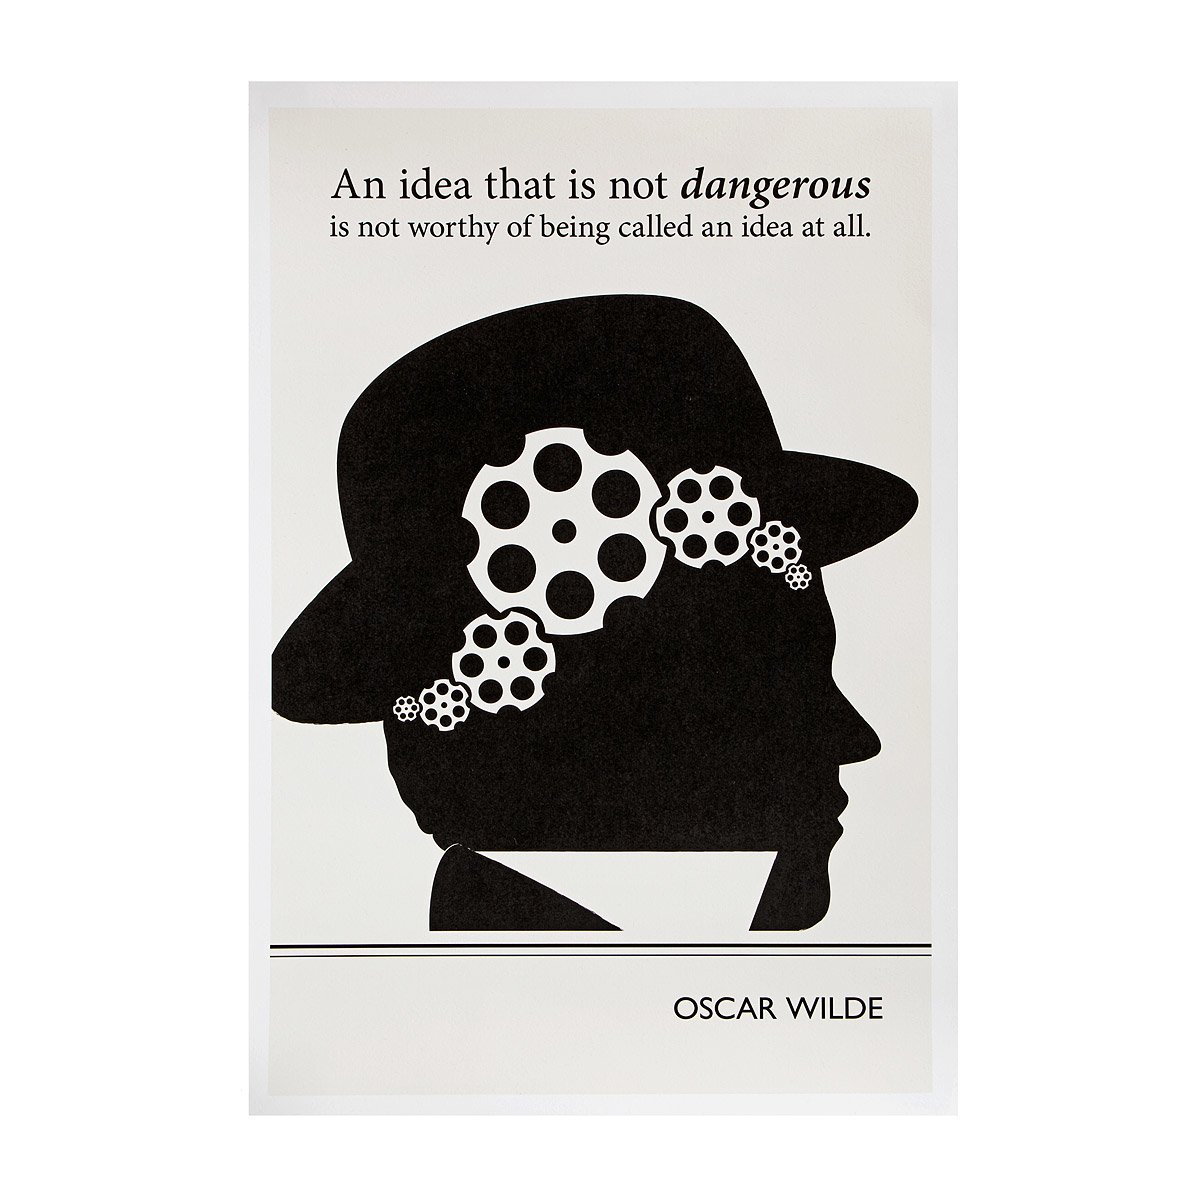 Wilde Literary Poster | Oscar Wilde quote | UncommonGoods